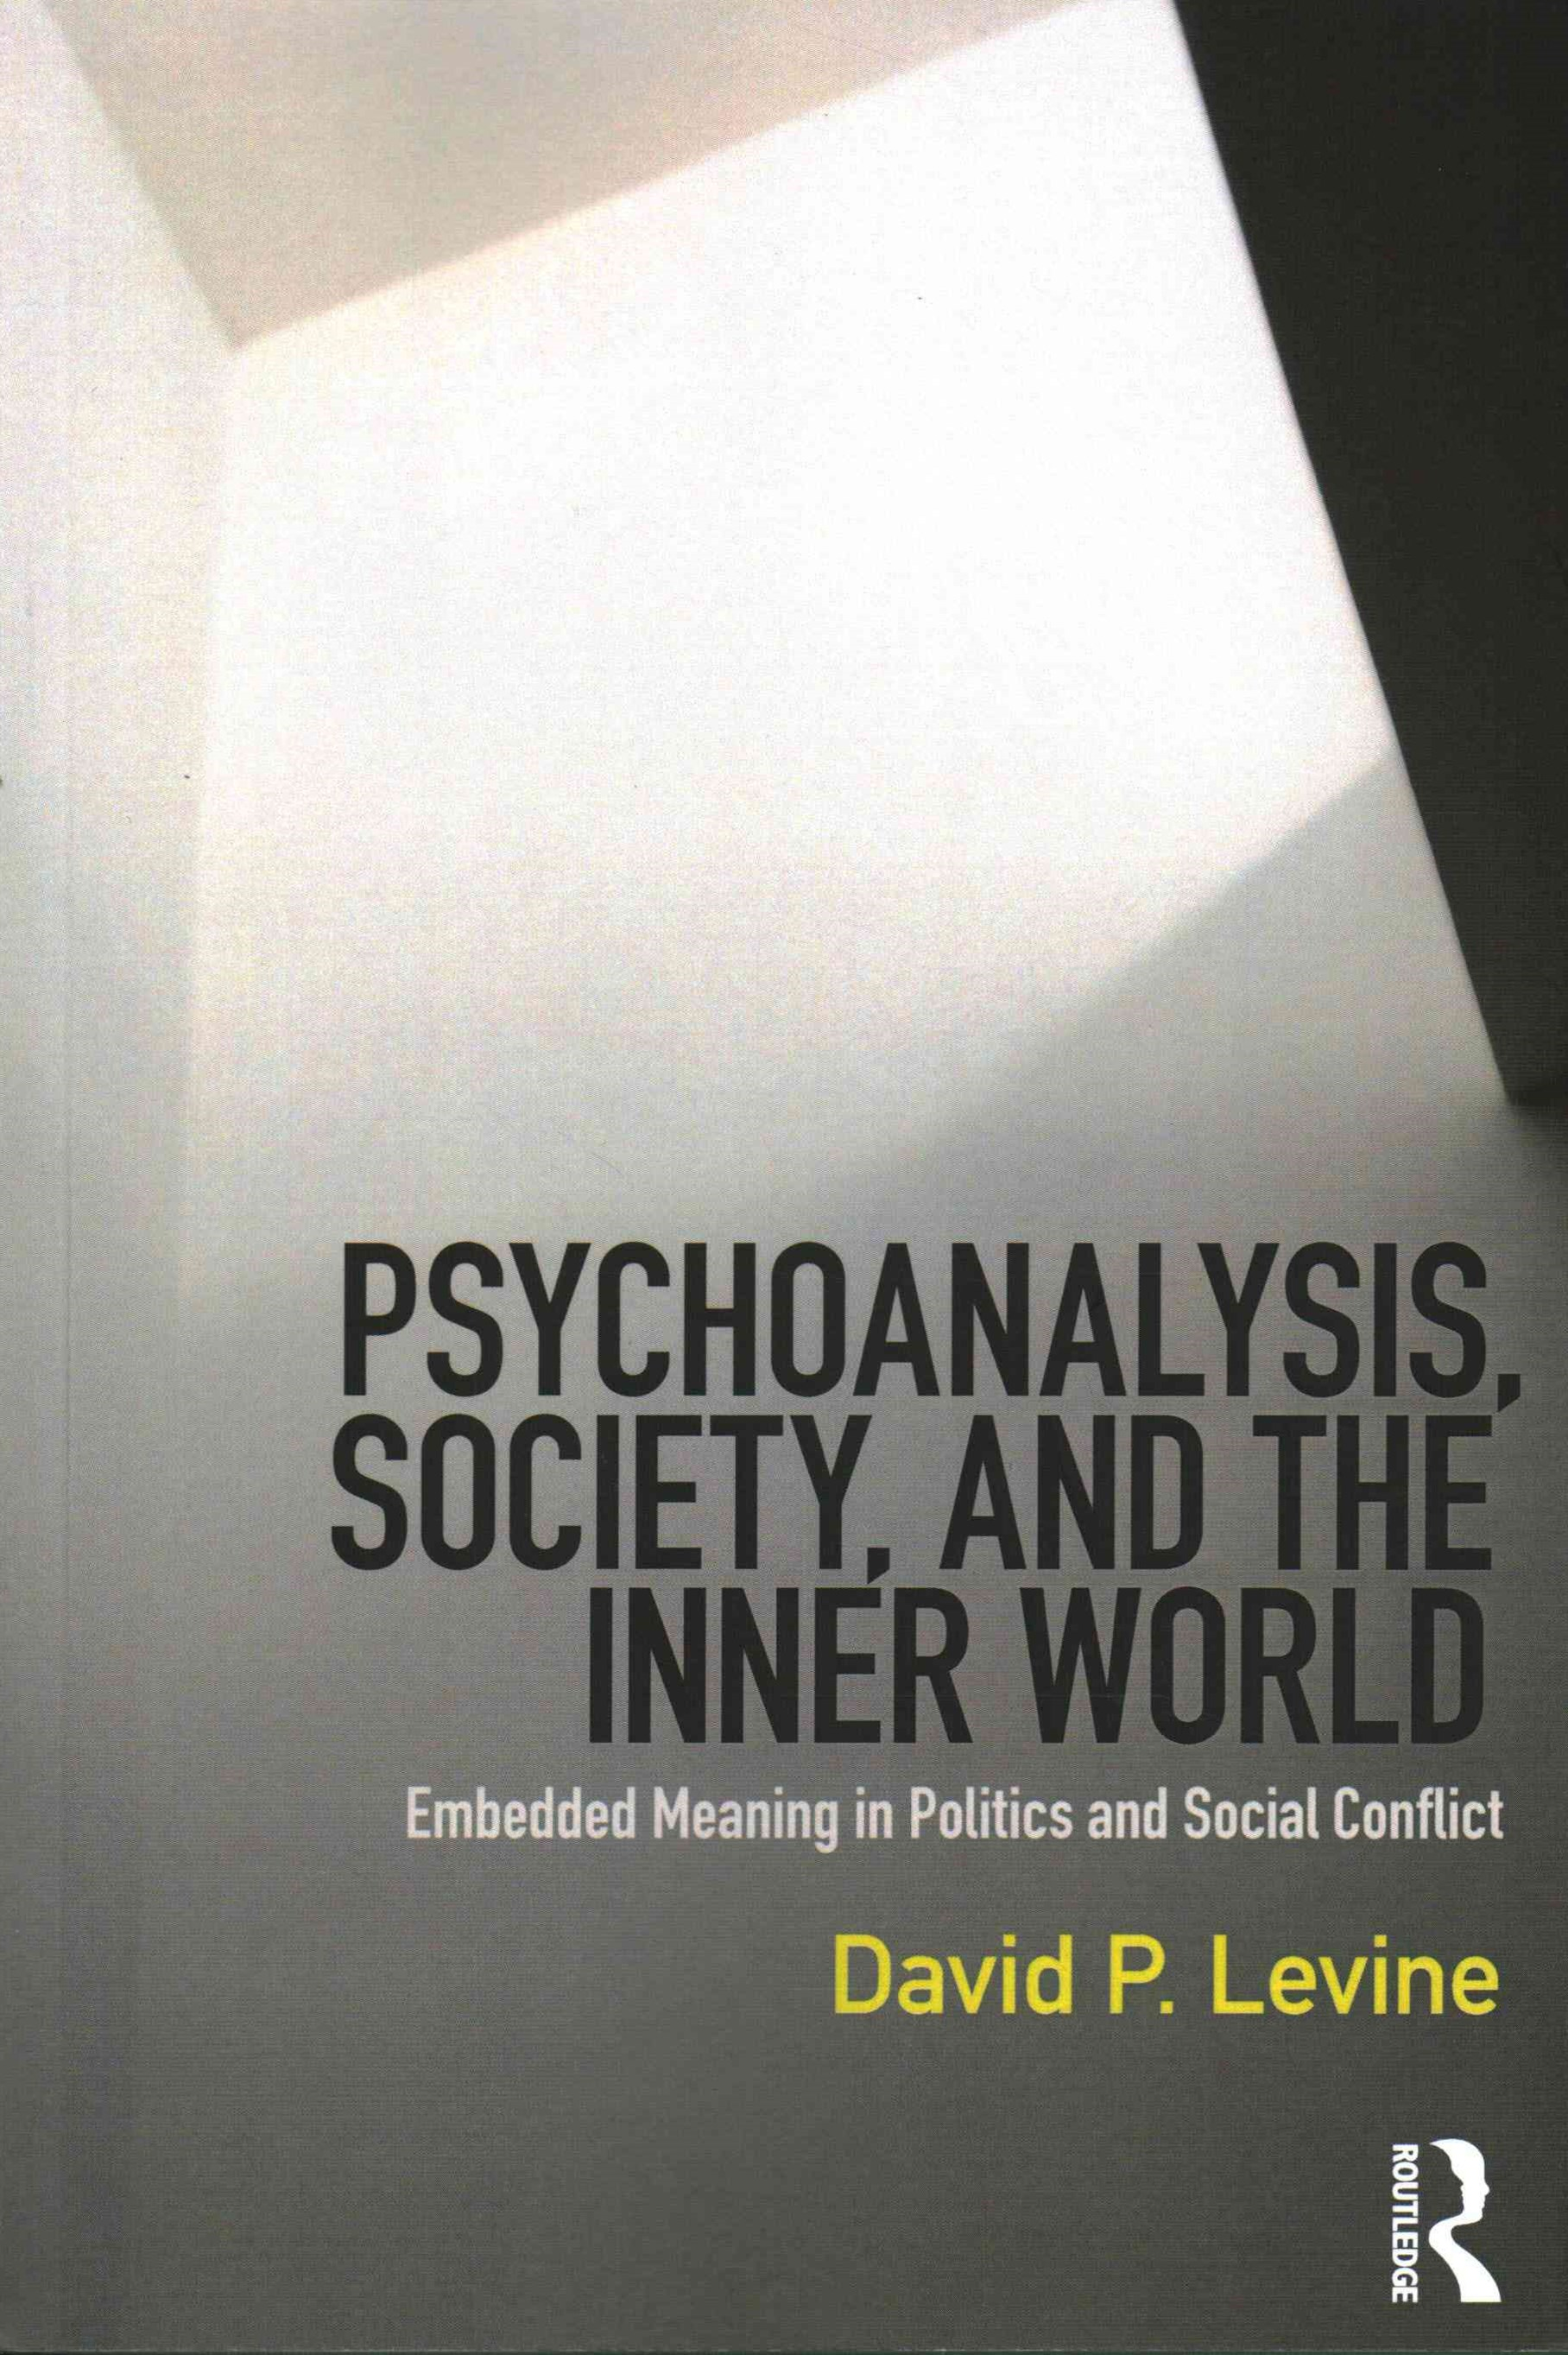 Psychoanalysis, Society, and the Inner World